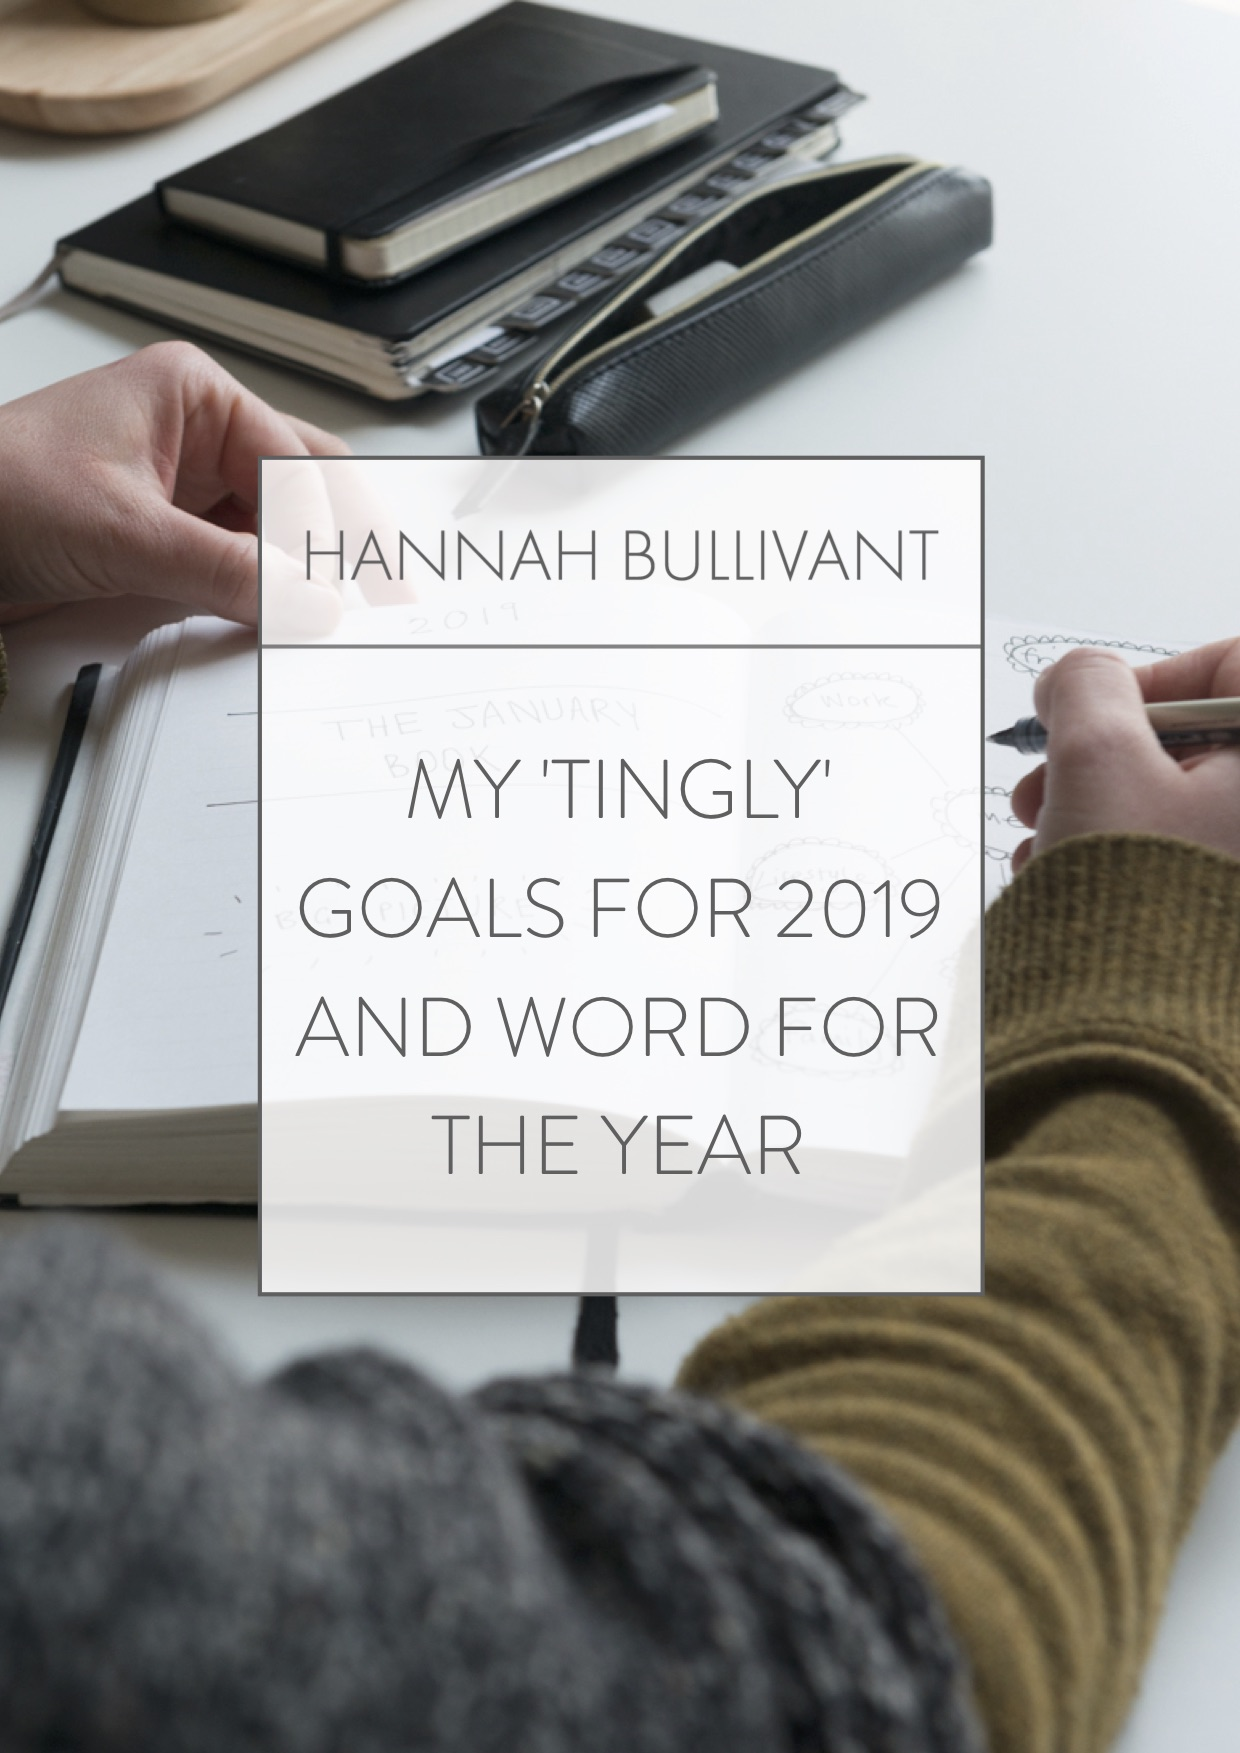 My tingly goals for 2019 and word for the year | hannahbullivant.com